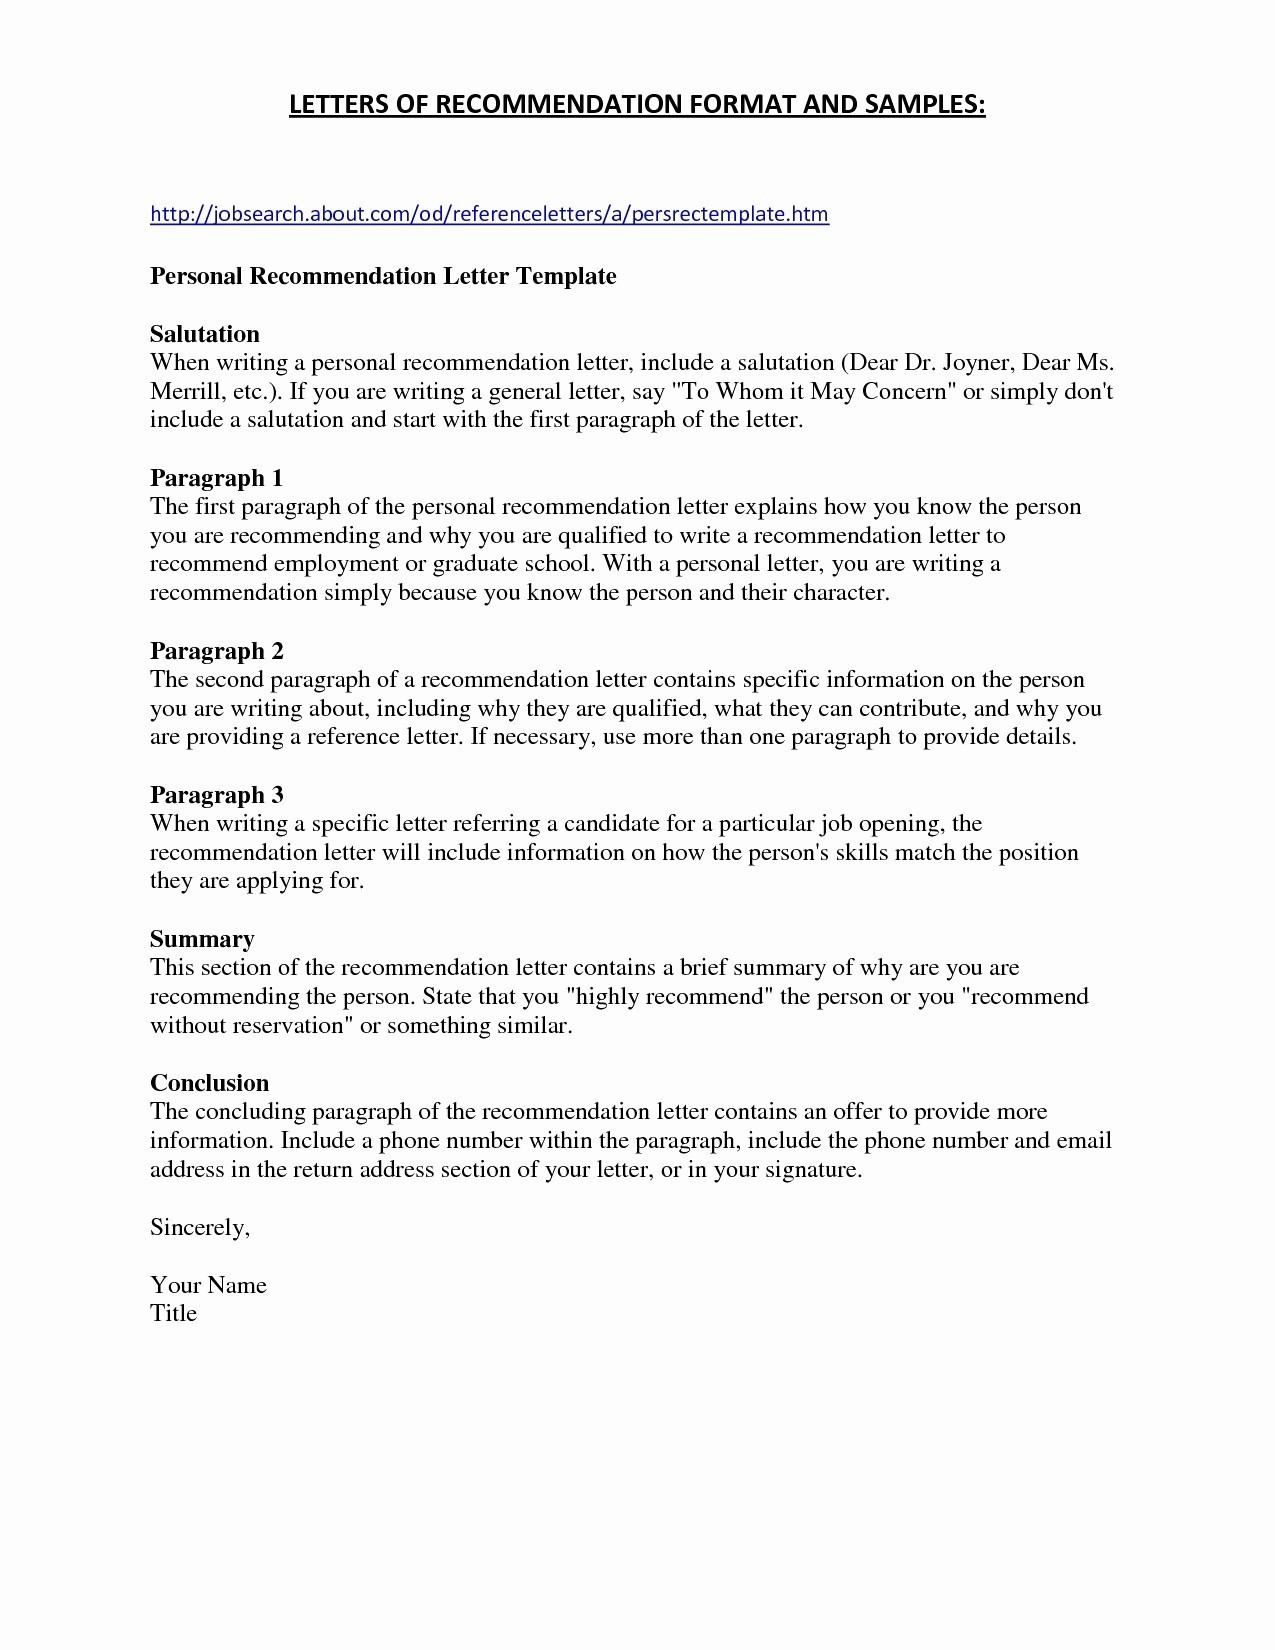 Sample Letter Of Recommendation Template Free - Academic Resume Template Word Elegant General Resume Template Free